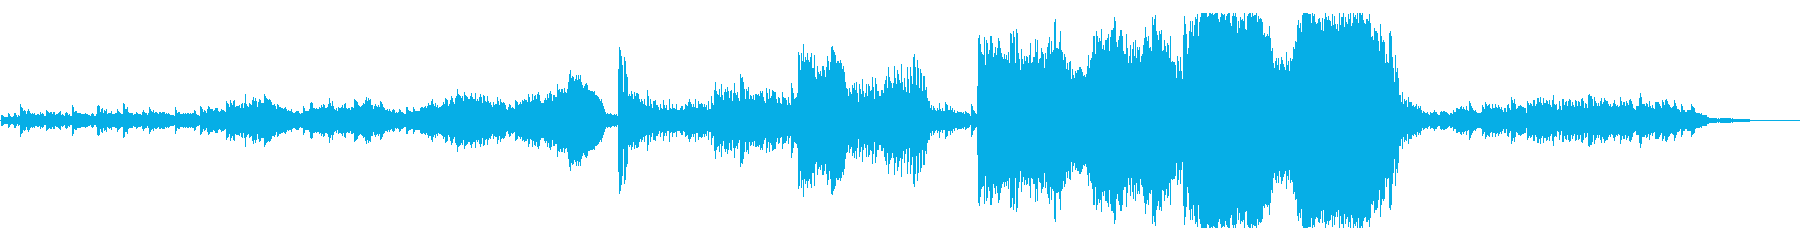 Winter Road's reproduced waveform